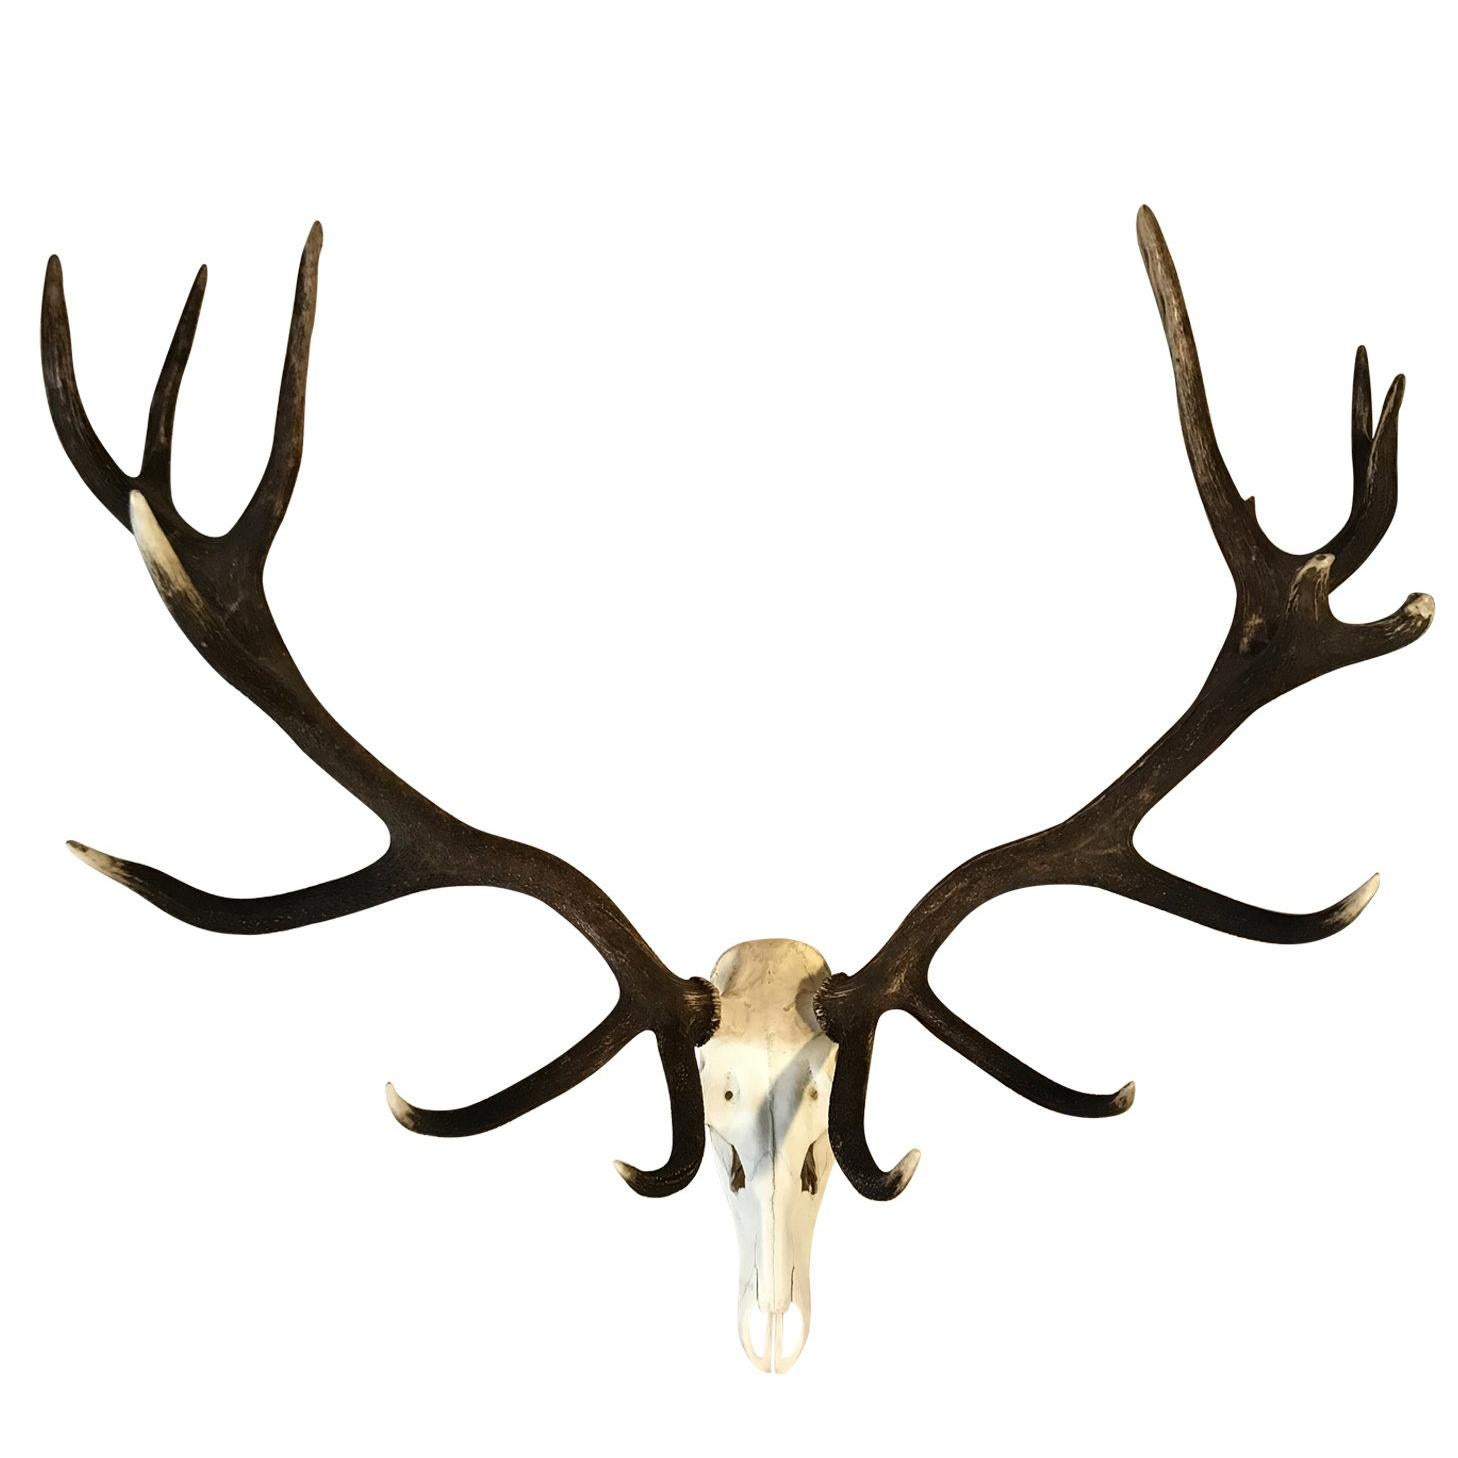 Giant Pair of Antlers of a Hungarian Red Stag